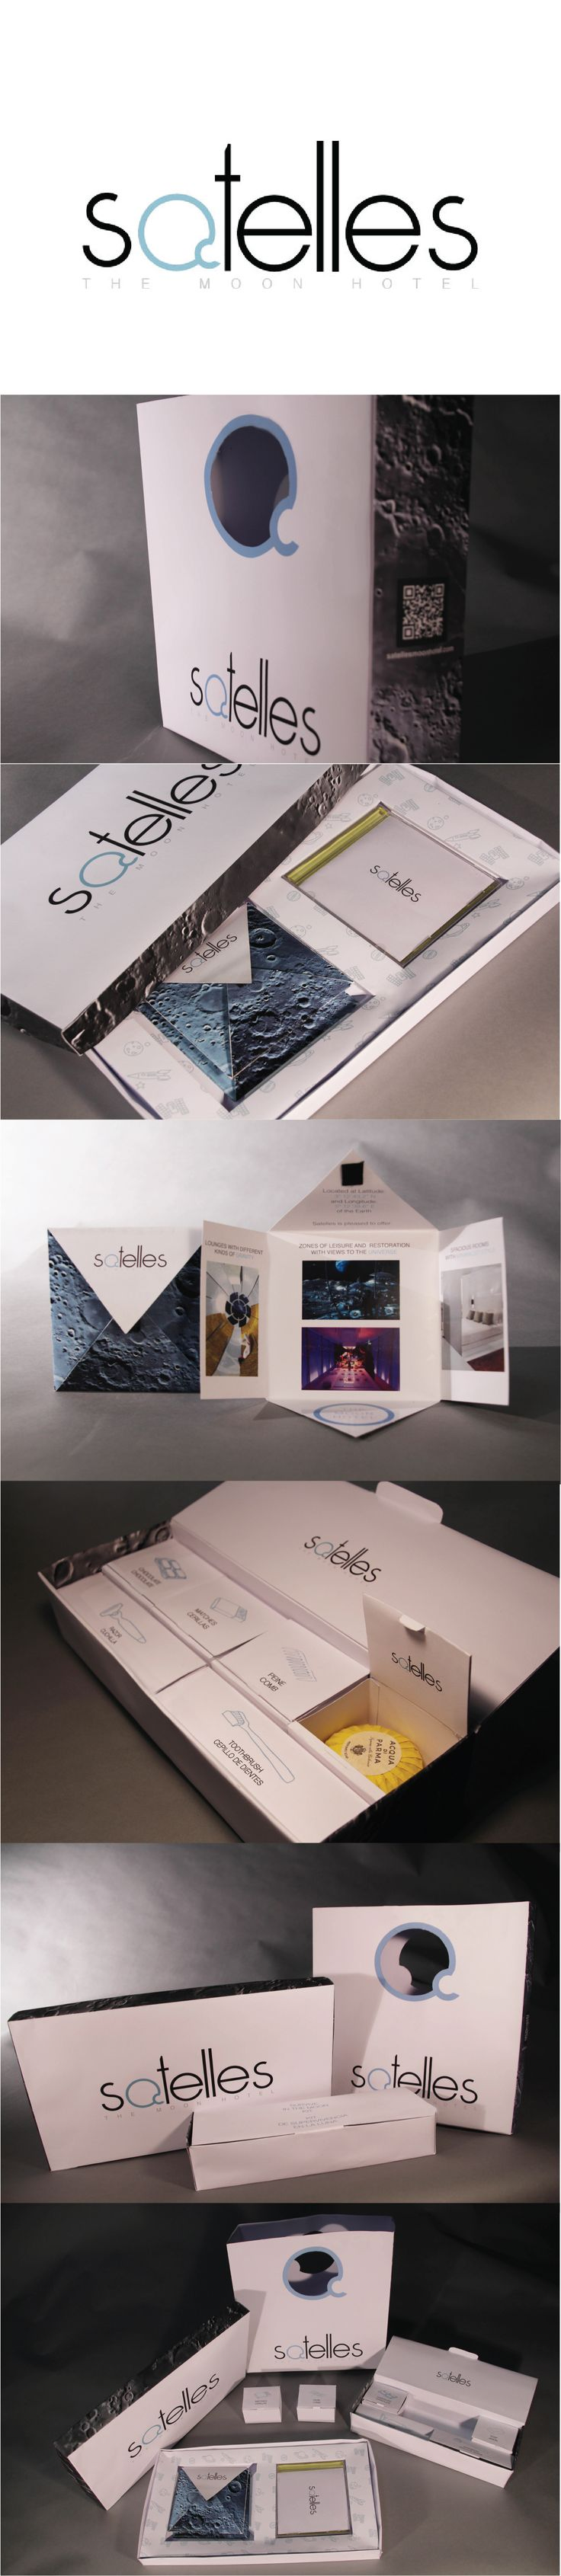 Satelles - The Moon Hotel  Welcome packaging design.  MM - María Mateos